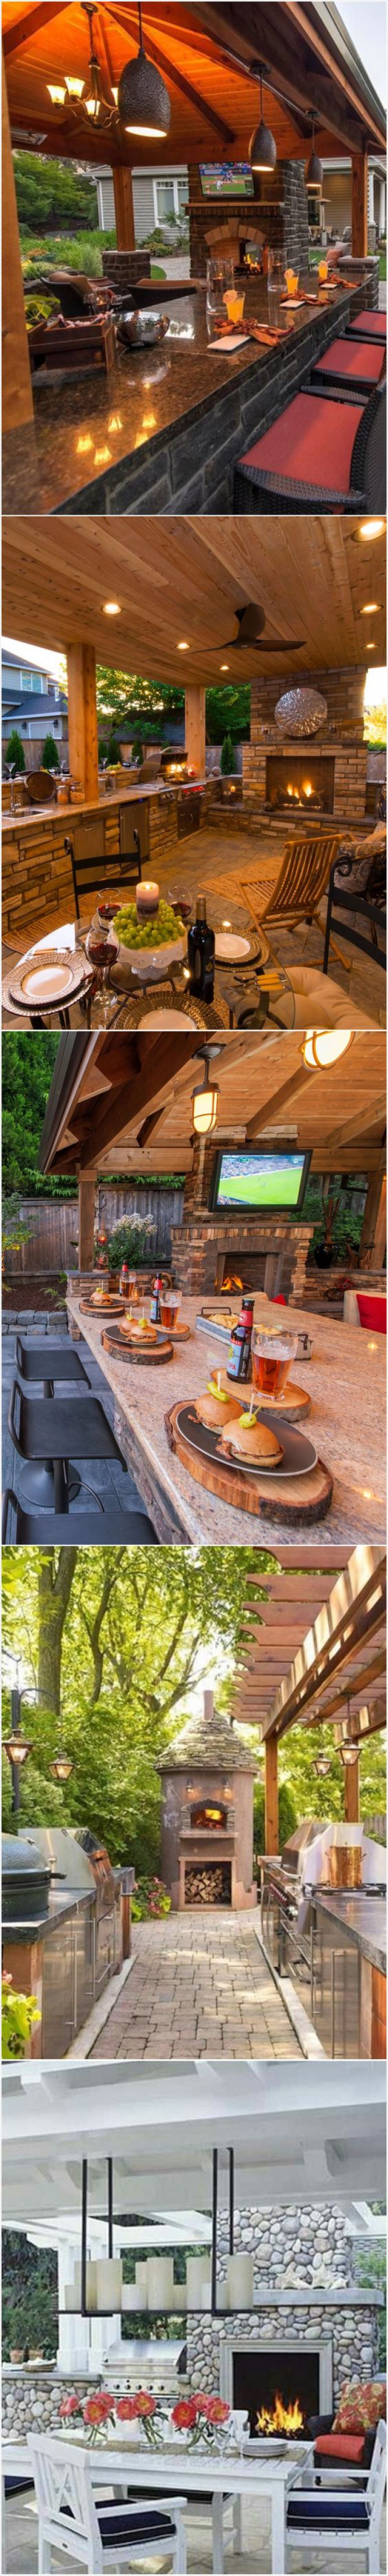 5 Gorgeous Outdoor Living Spaces